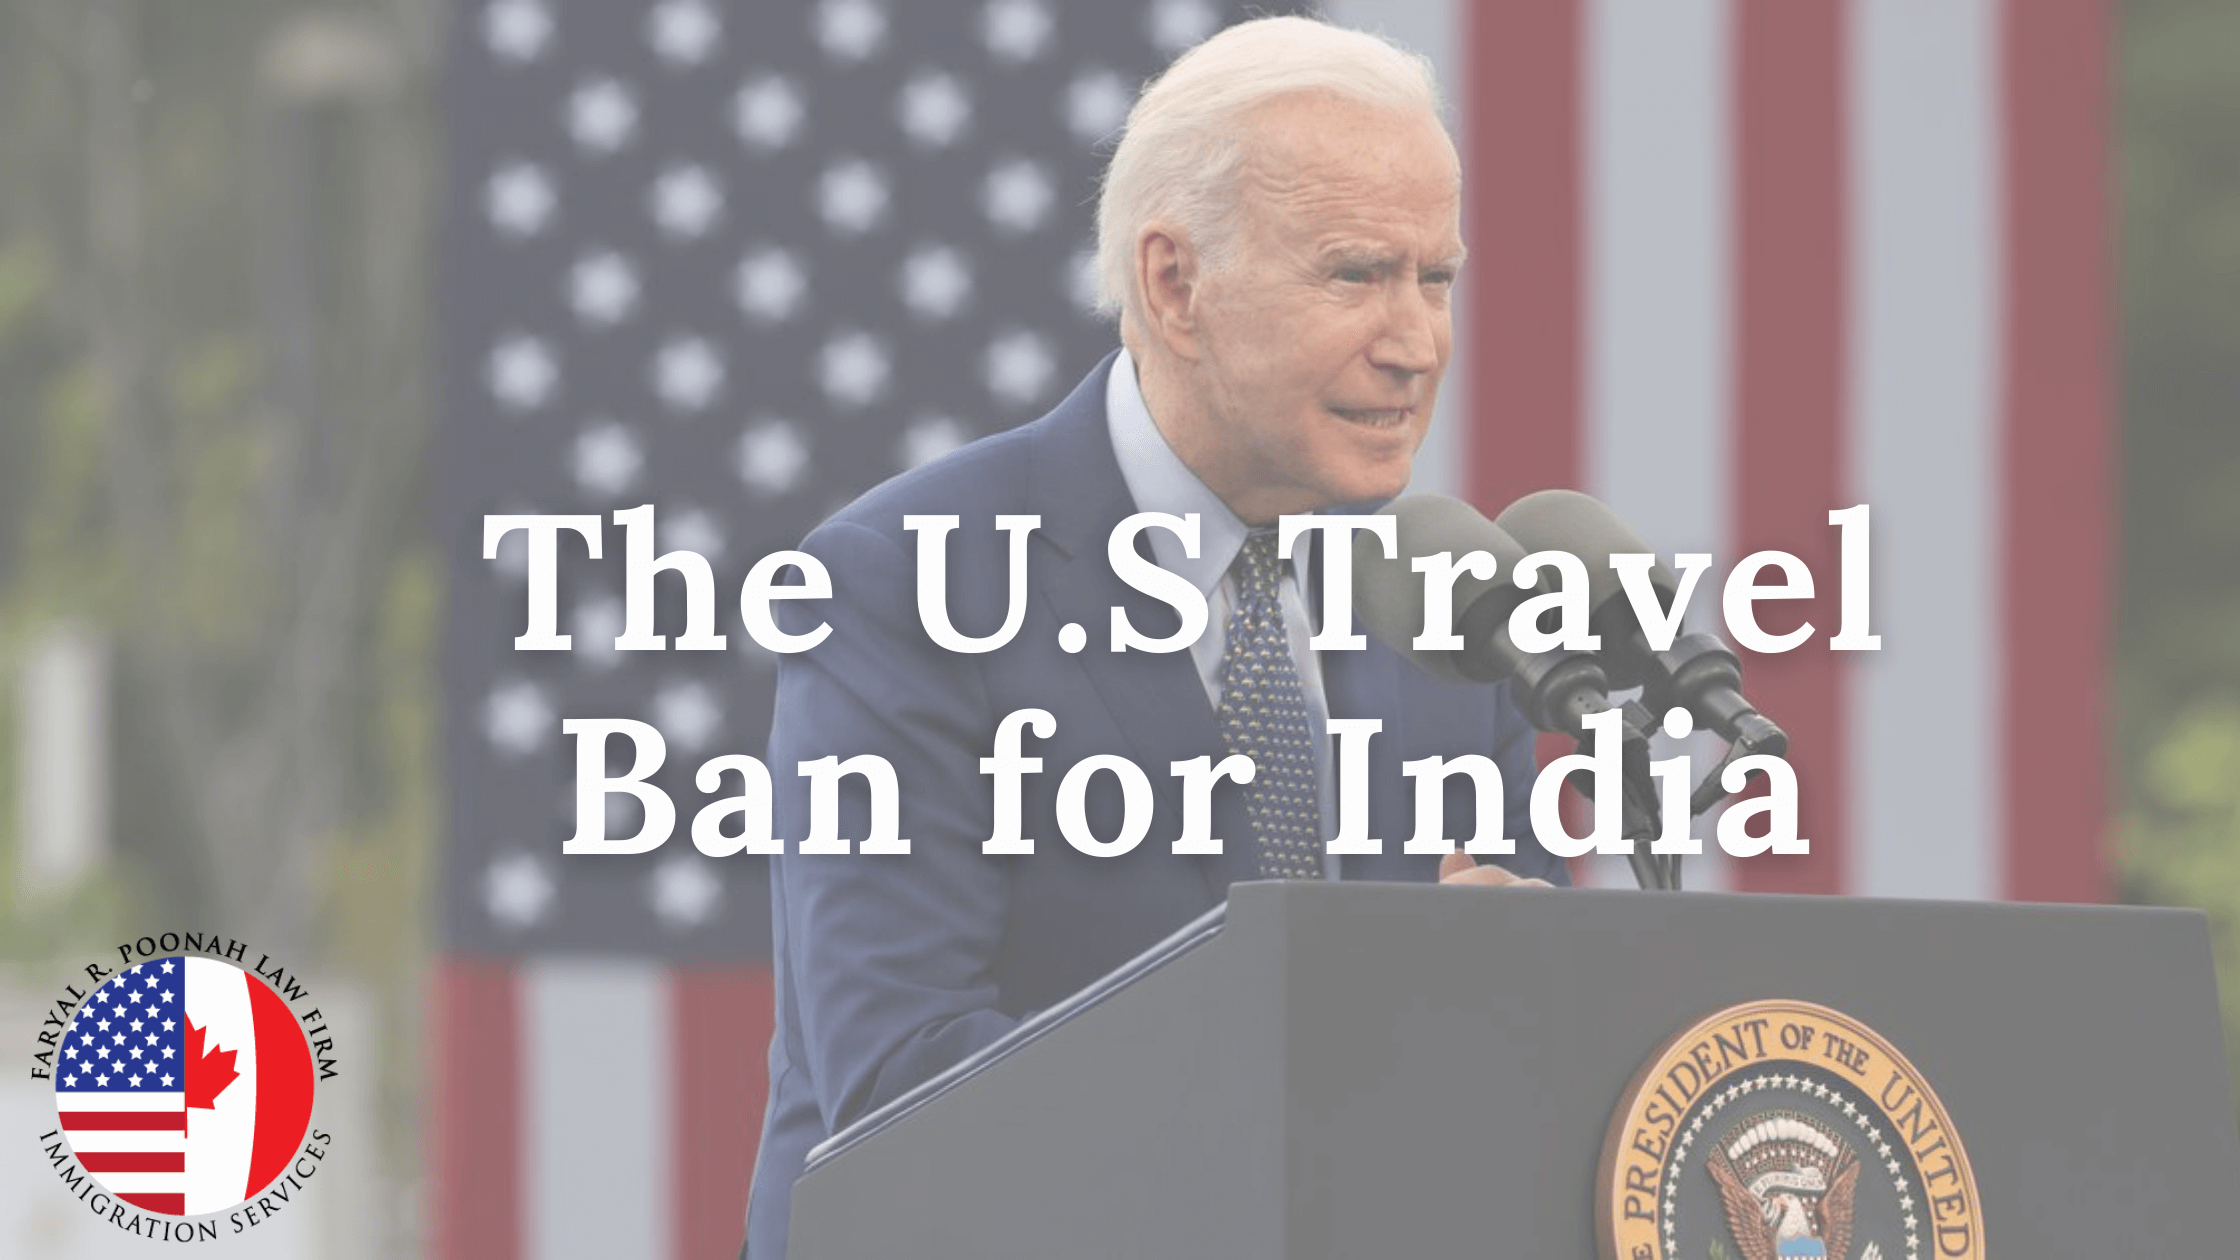 U.S. Travel Ban for India